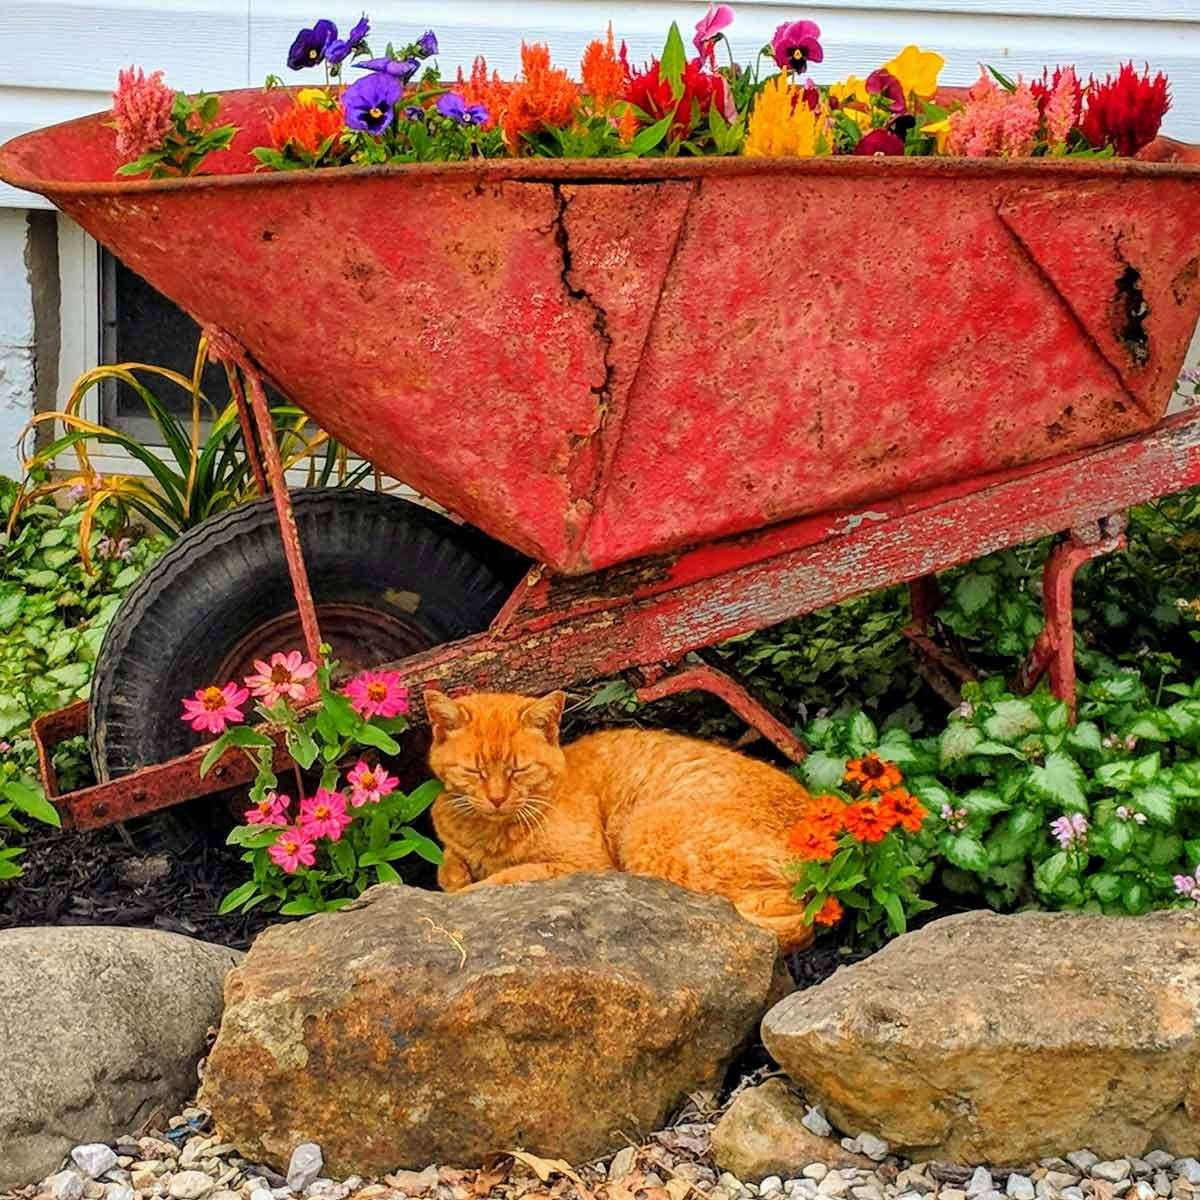 20 Brilliant Raised Garden Bed Ideas You Can Make In A: 24 Clever Repurposed Garden Containers